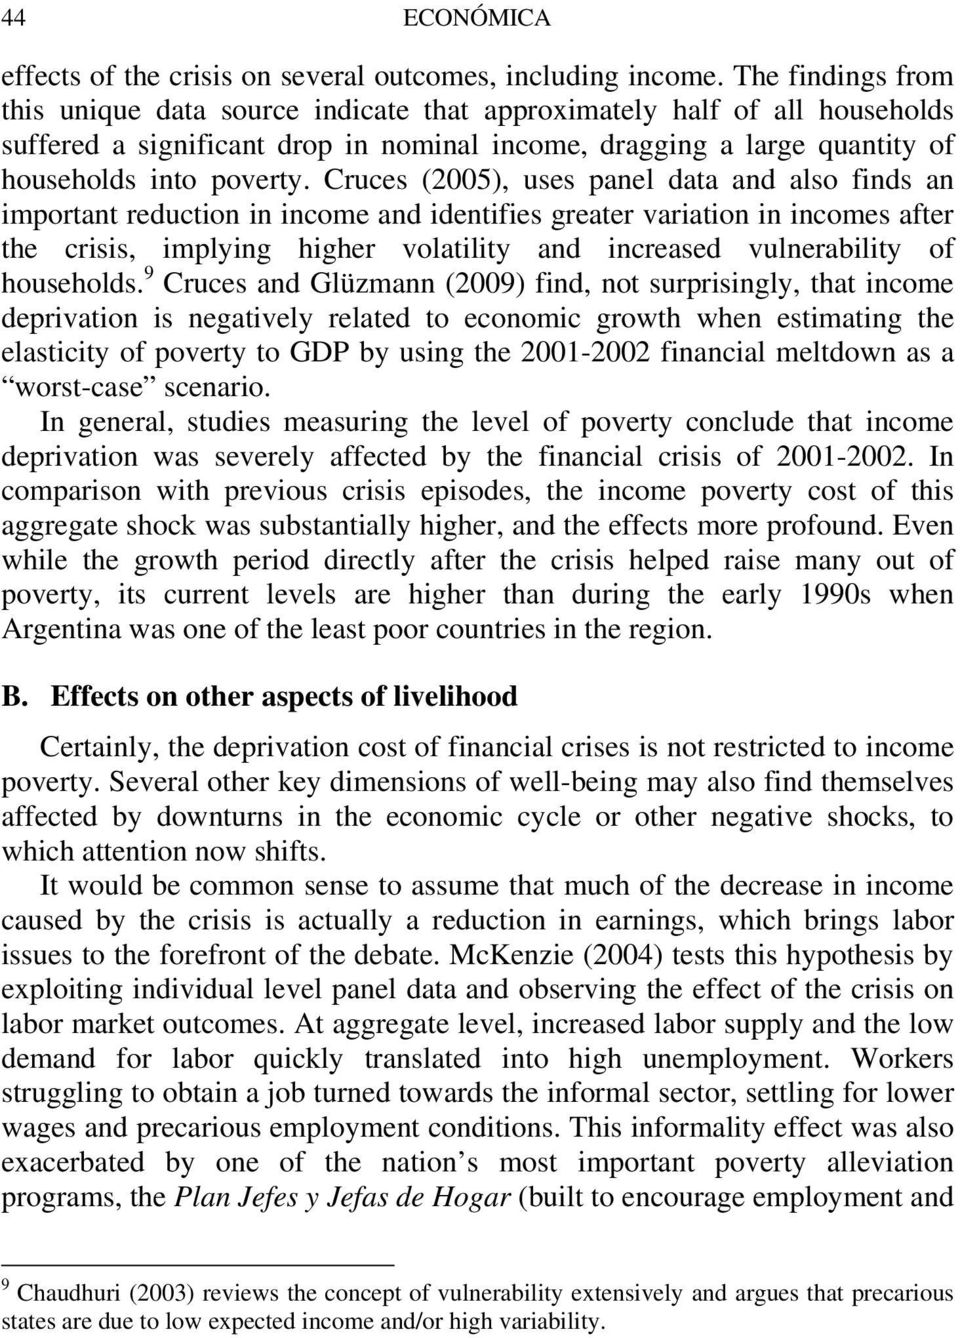 Cruces (2005), uses panel data and also finds an important reduction in income and identifies greater variation in incomes after the crisis, implying higher volatility and increased vulnerability of